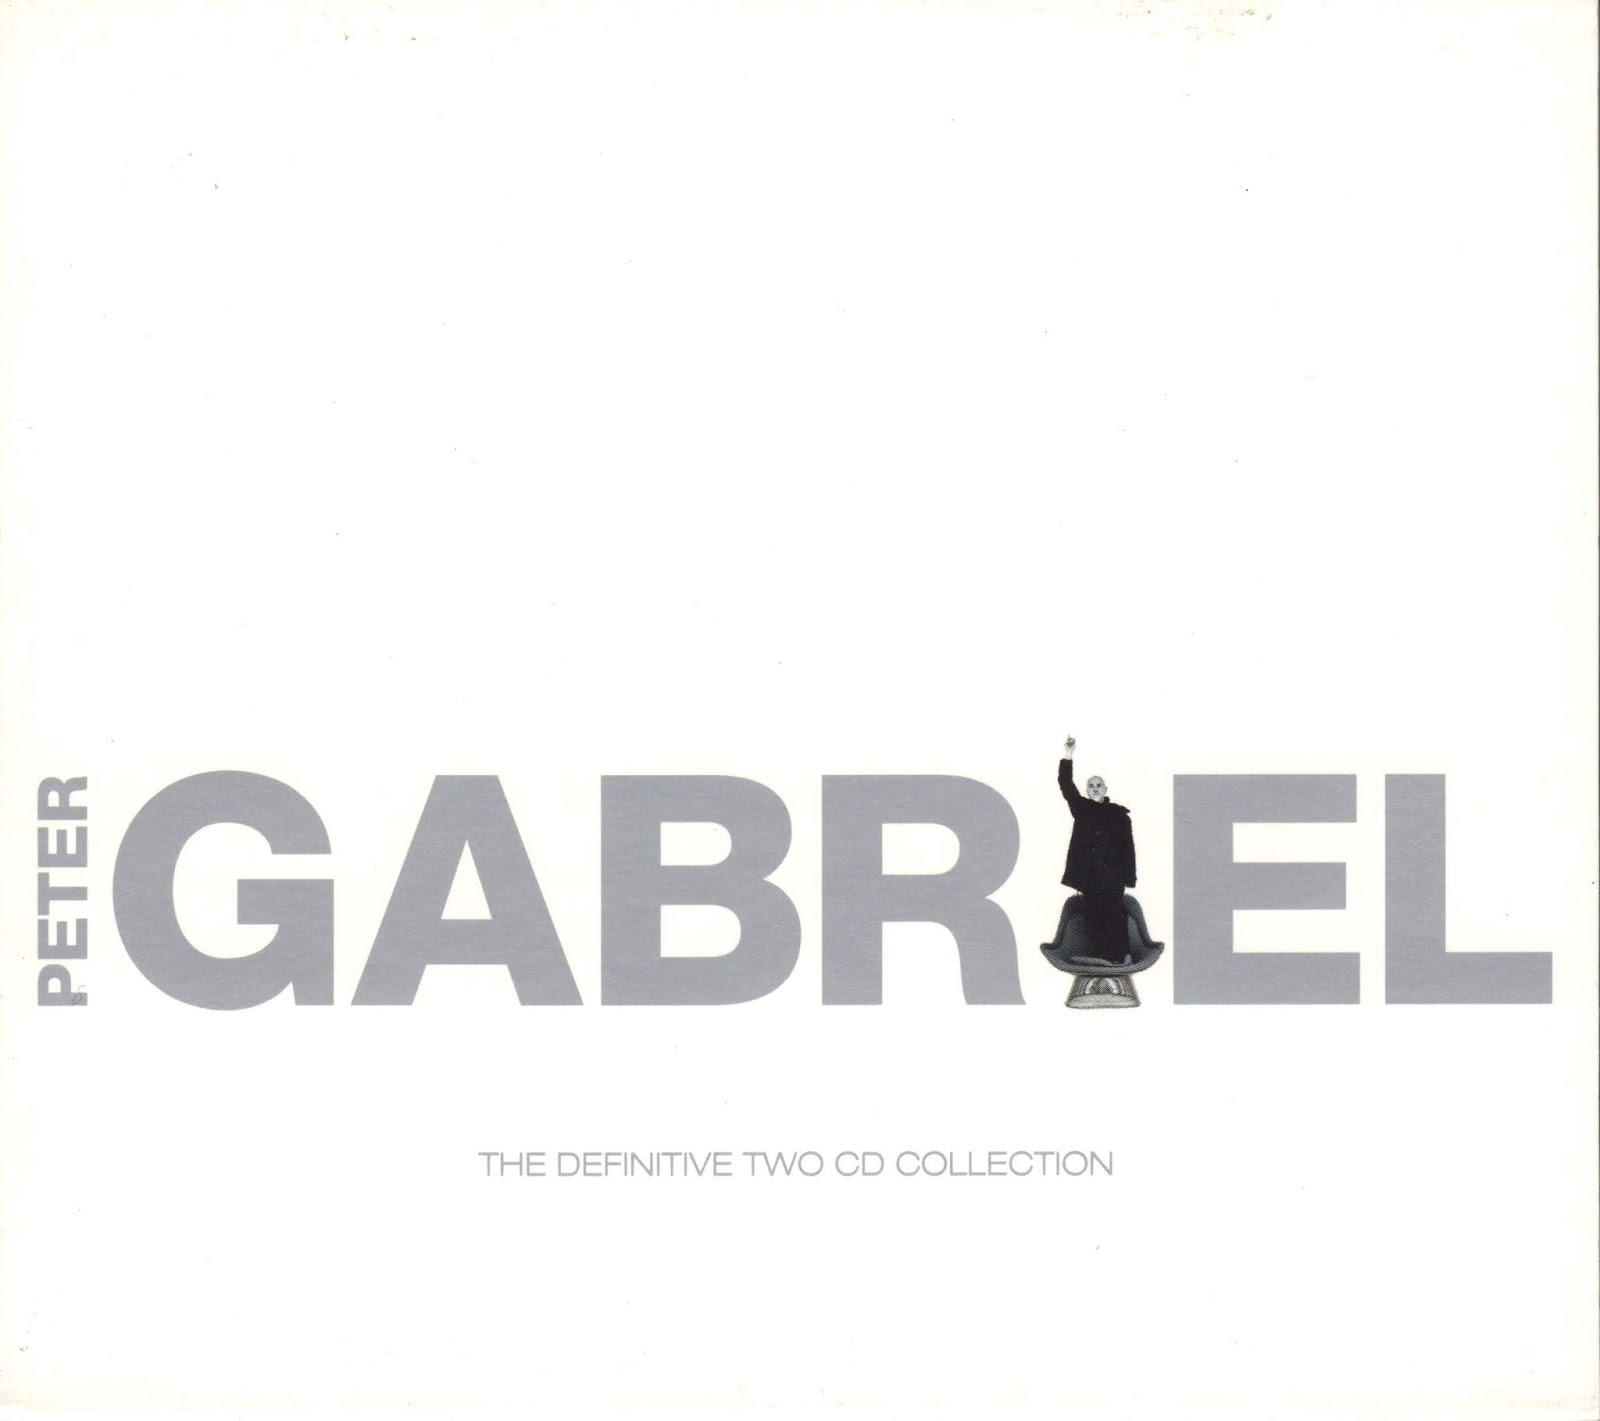 OnlyFlac: Peter Gabriel - The Definitive Two CD Collection : Hit